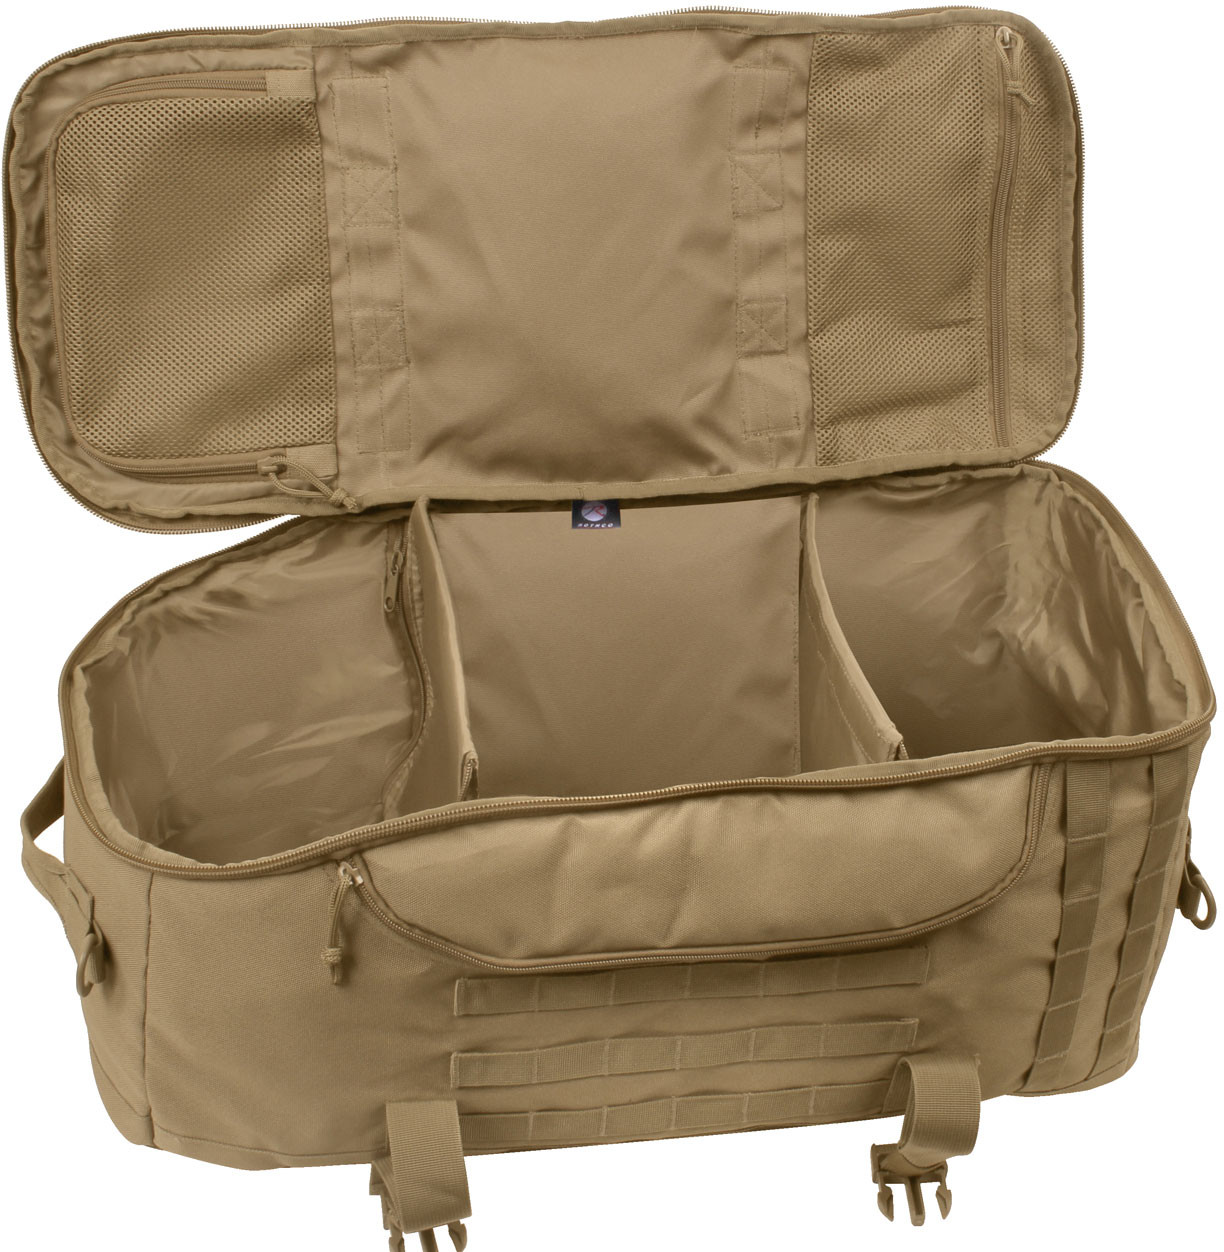 Coyote Brown Multi Functional Convertible 3 In 1 Mission Duffle Bag 7d35f9fb604